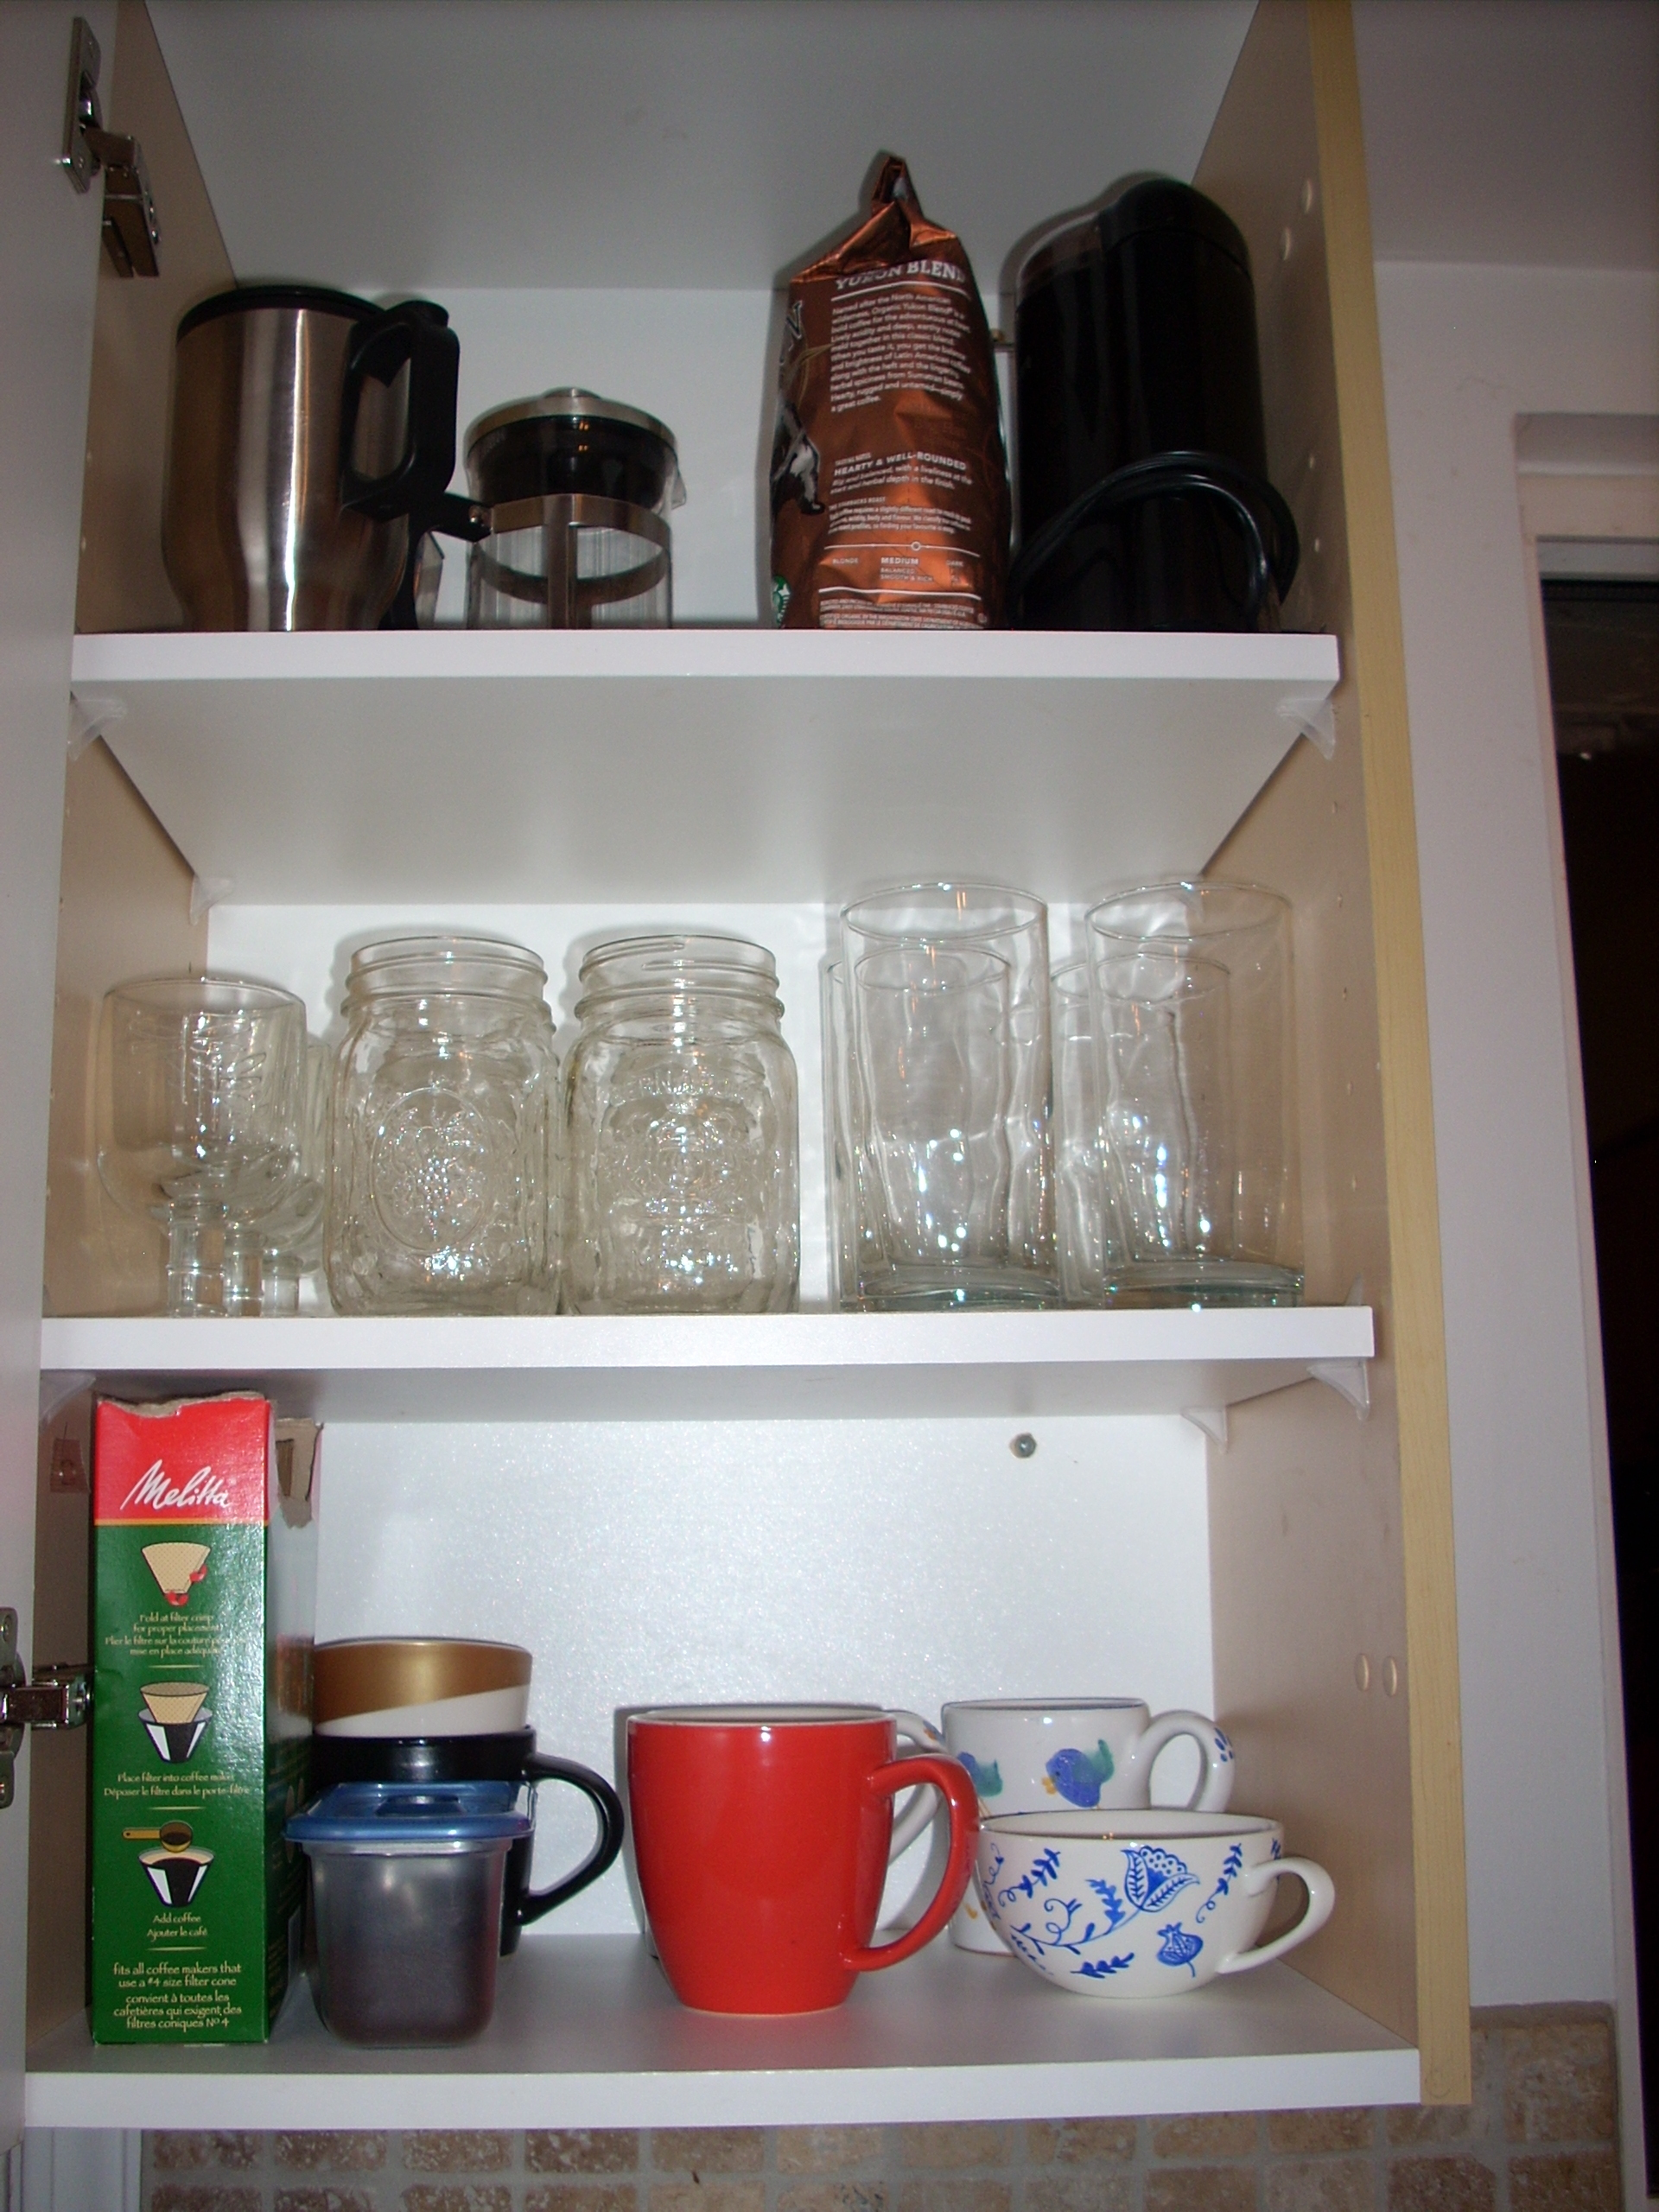 After-Kitchen cupboard